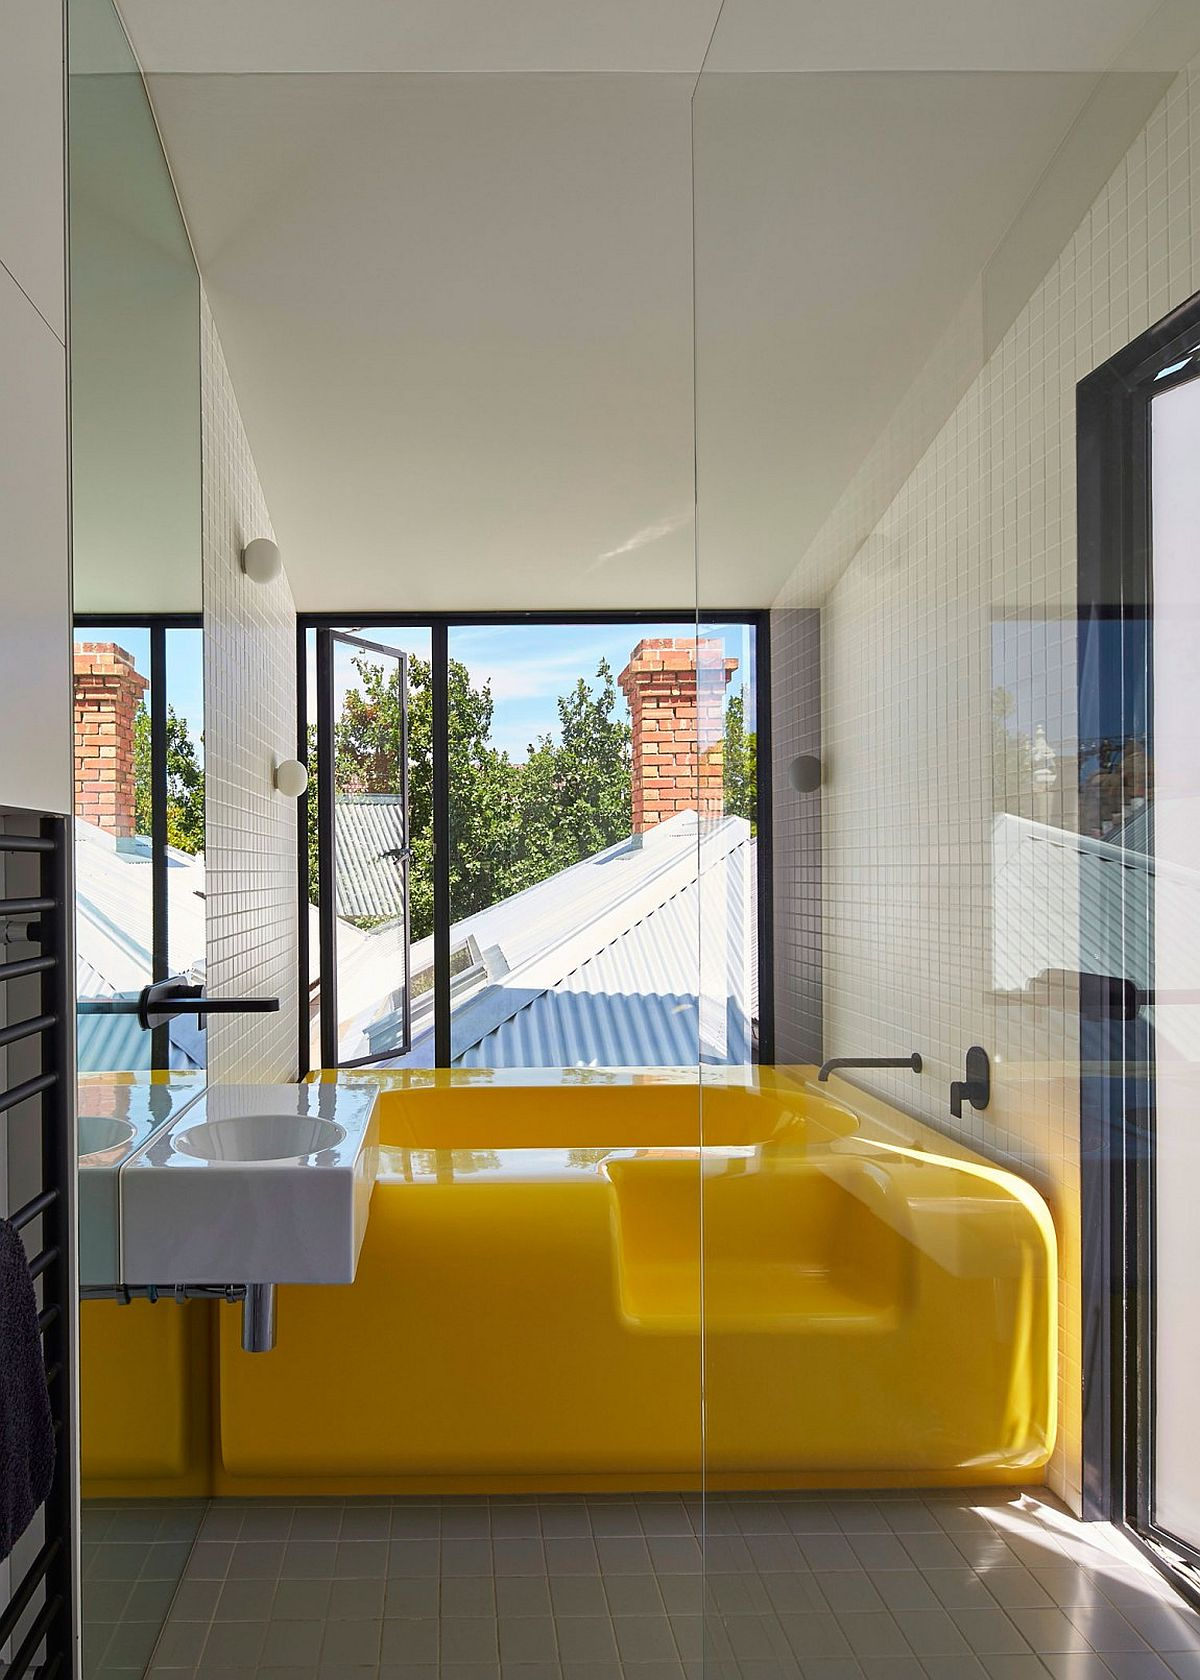 Bespoke fiberglass bathtub in bright yellow for the bathroom